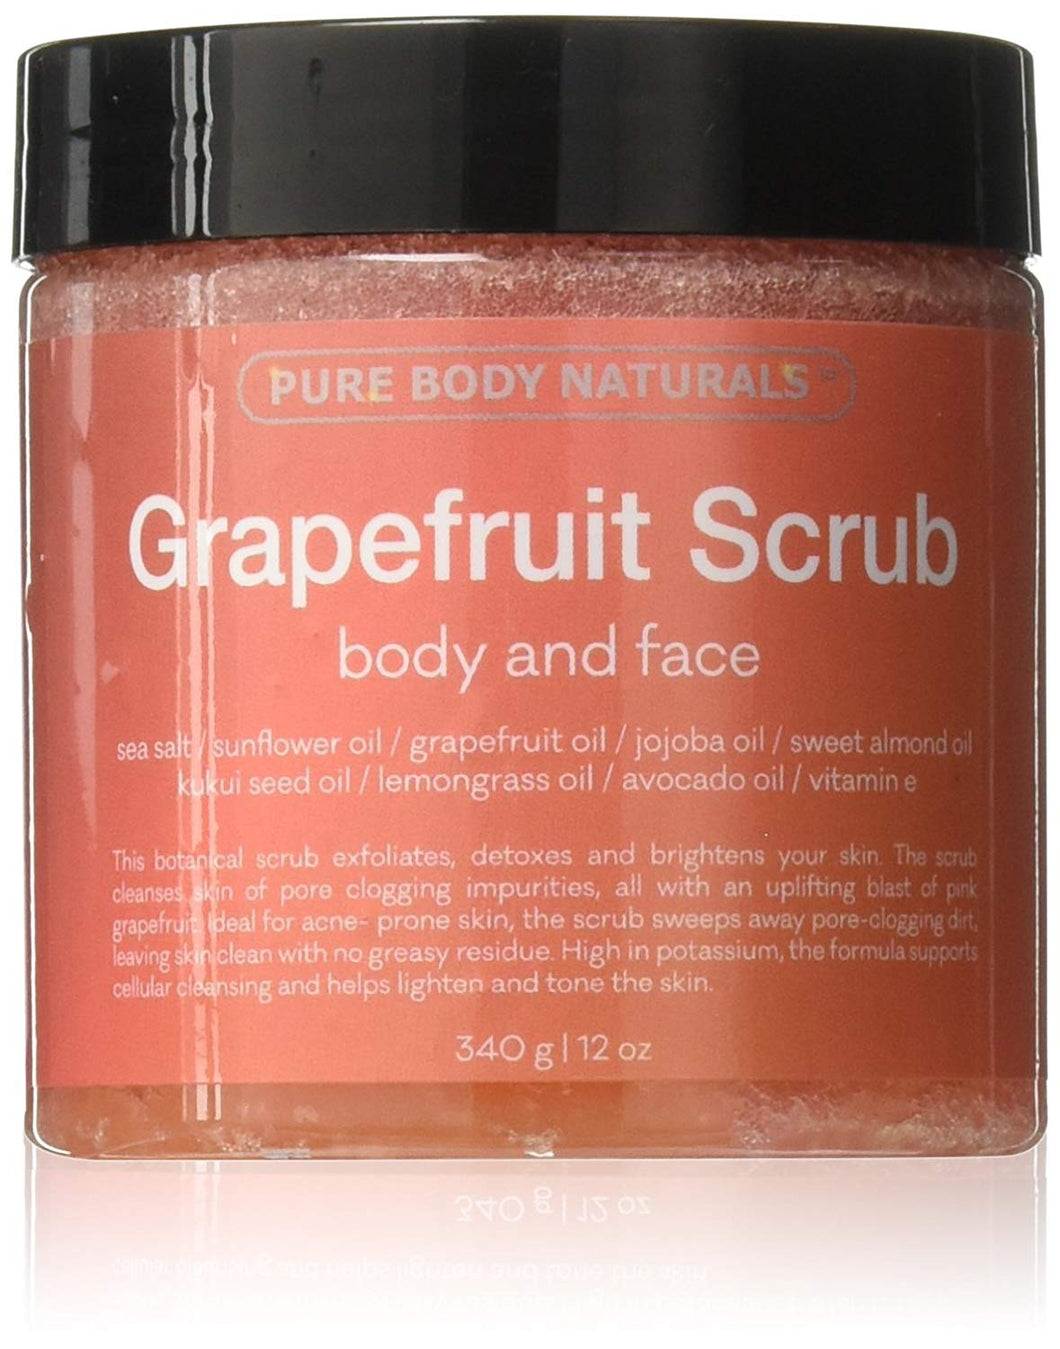 Grapefruit Scrub by Pure Body Naturals, Face and Body Scrub for Acne and Inflammation, 12 Ounce